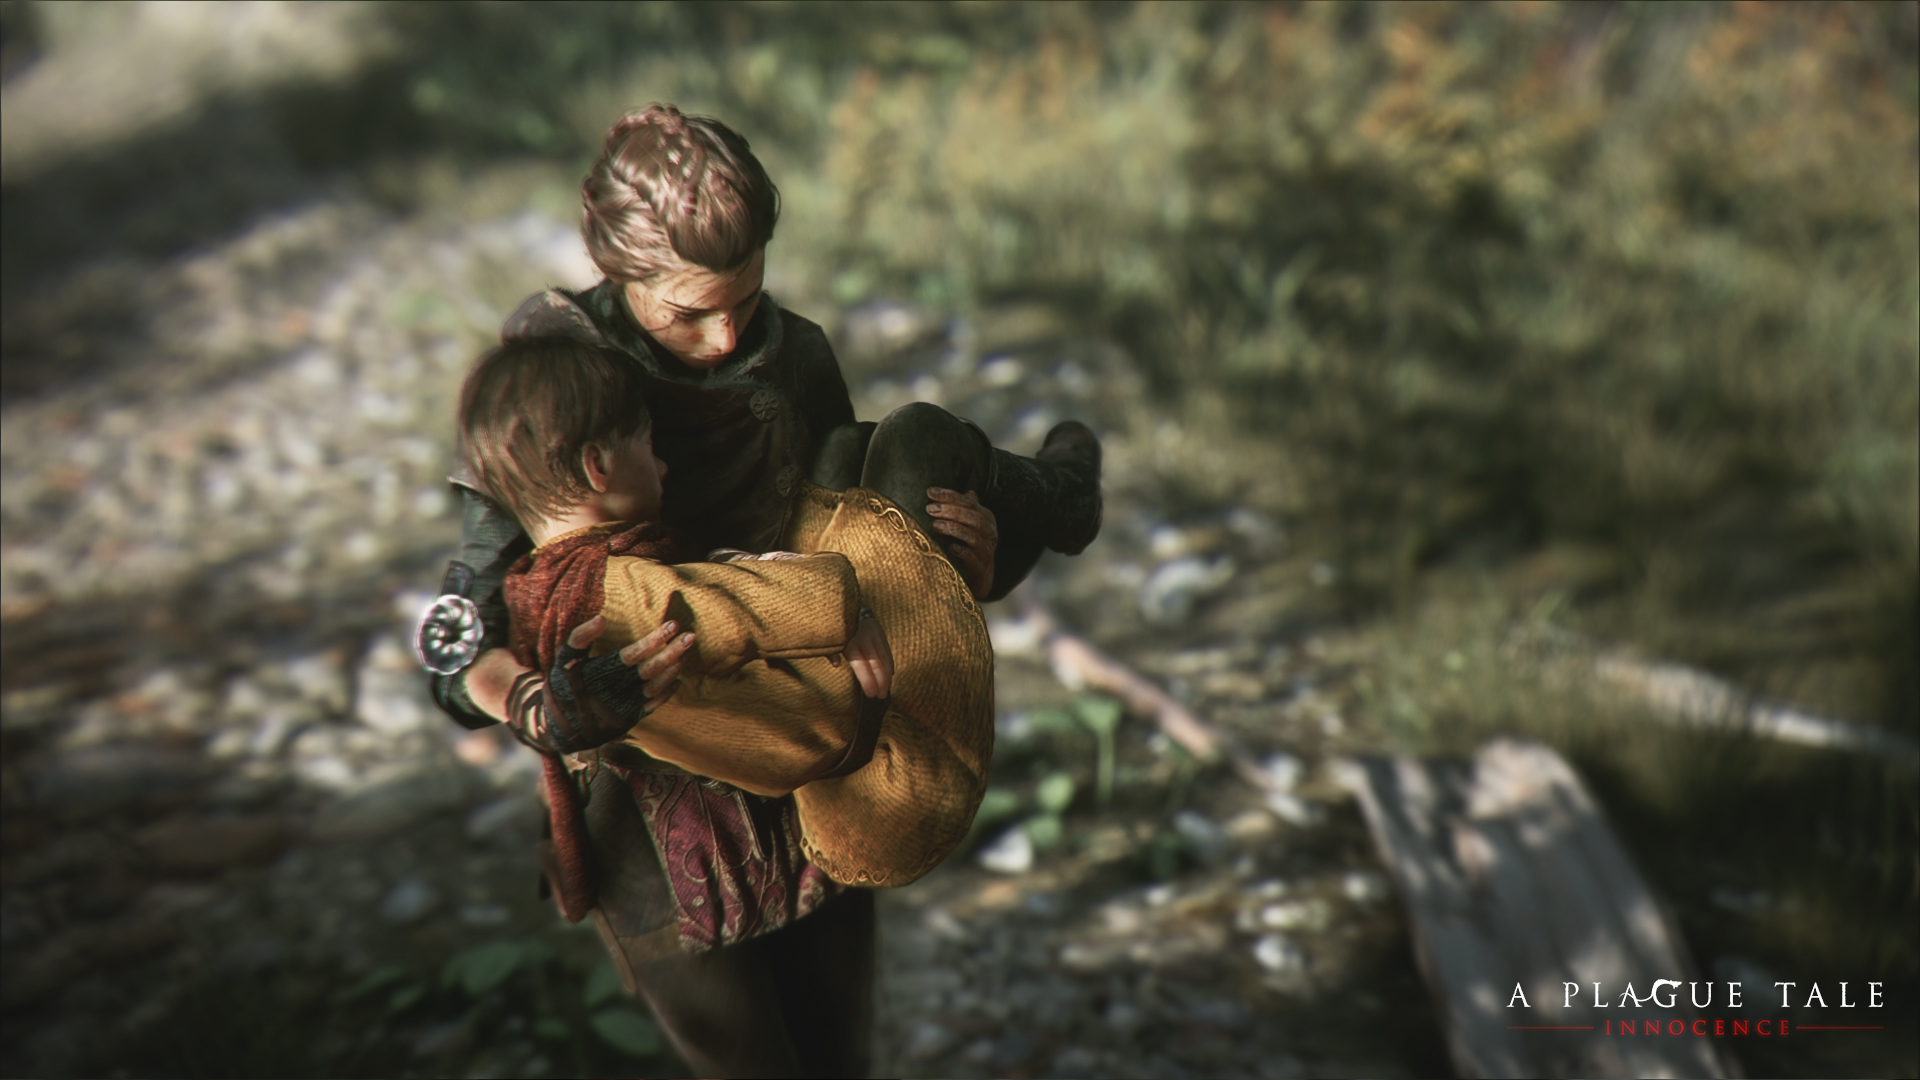 A Plague Tale Innocence rounds out its web series with the second and third episodes